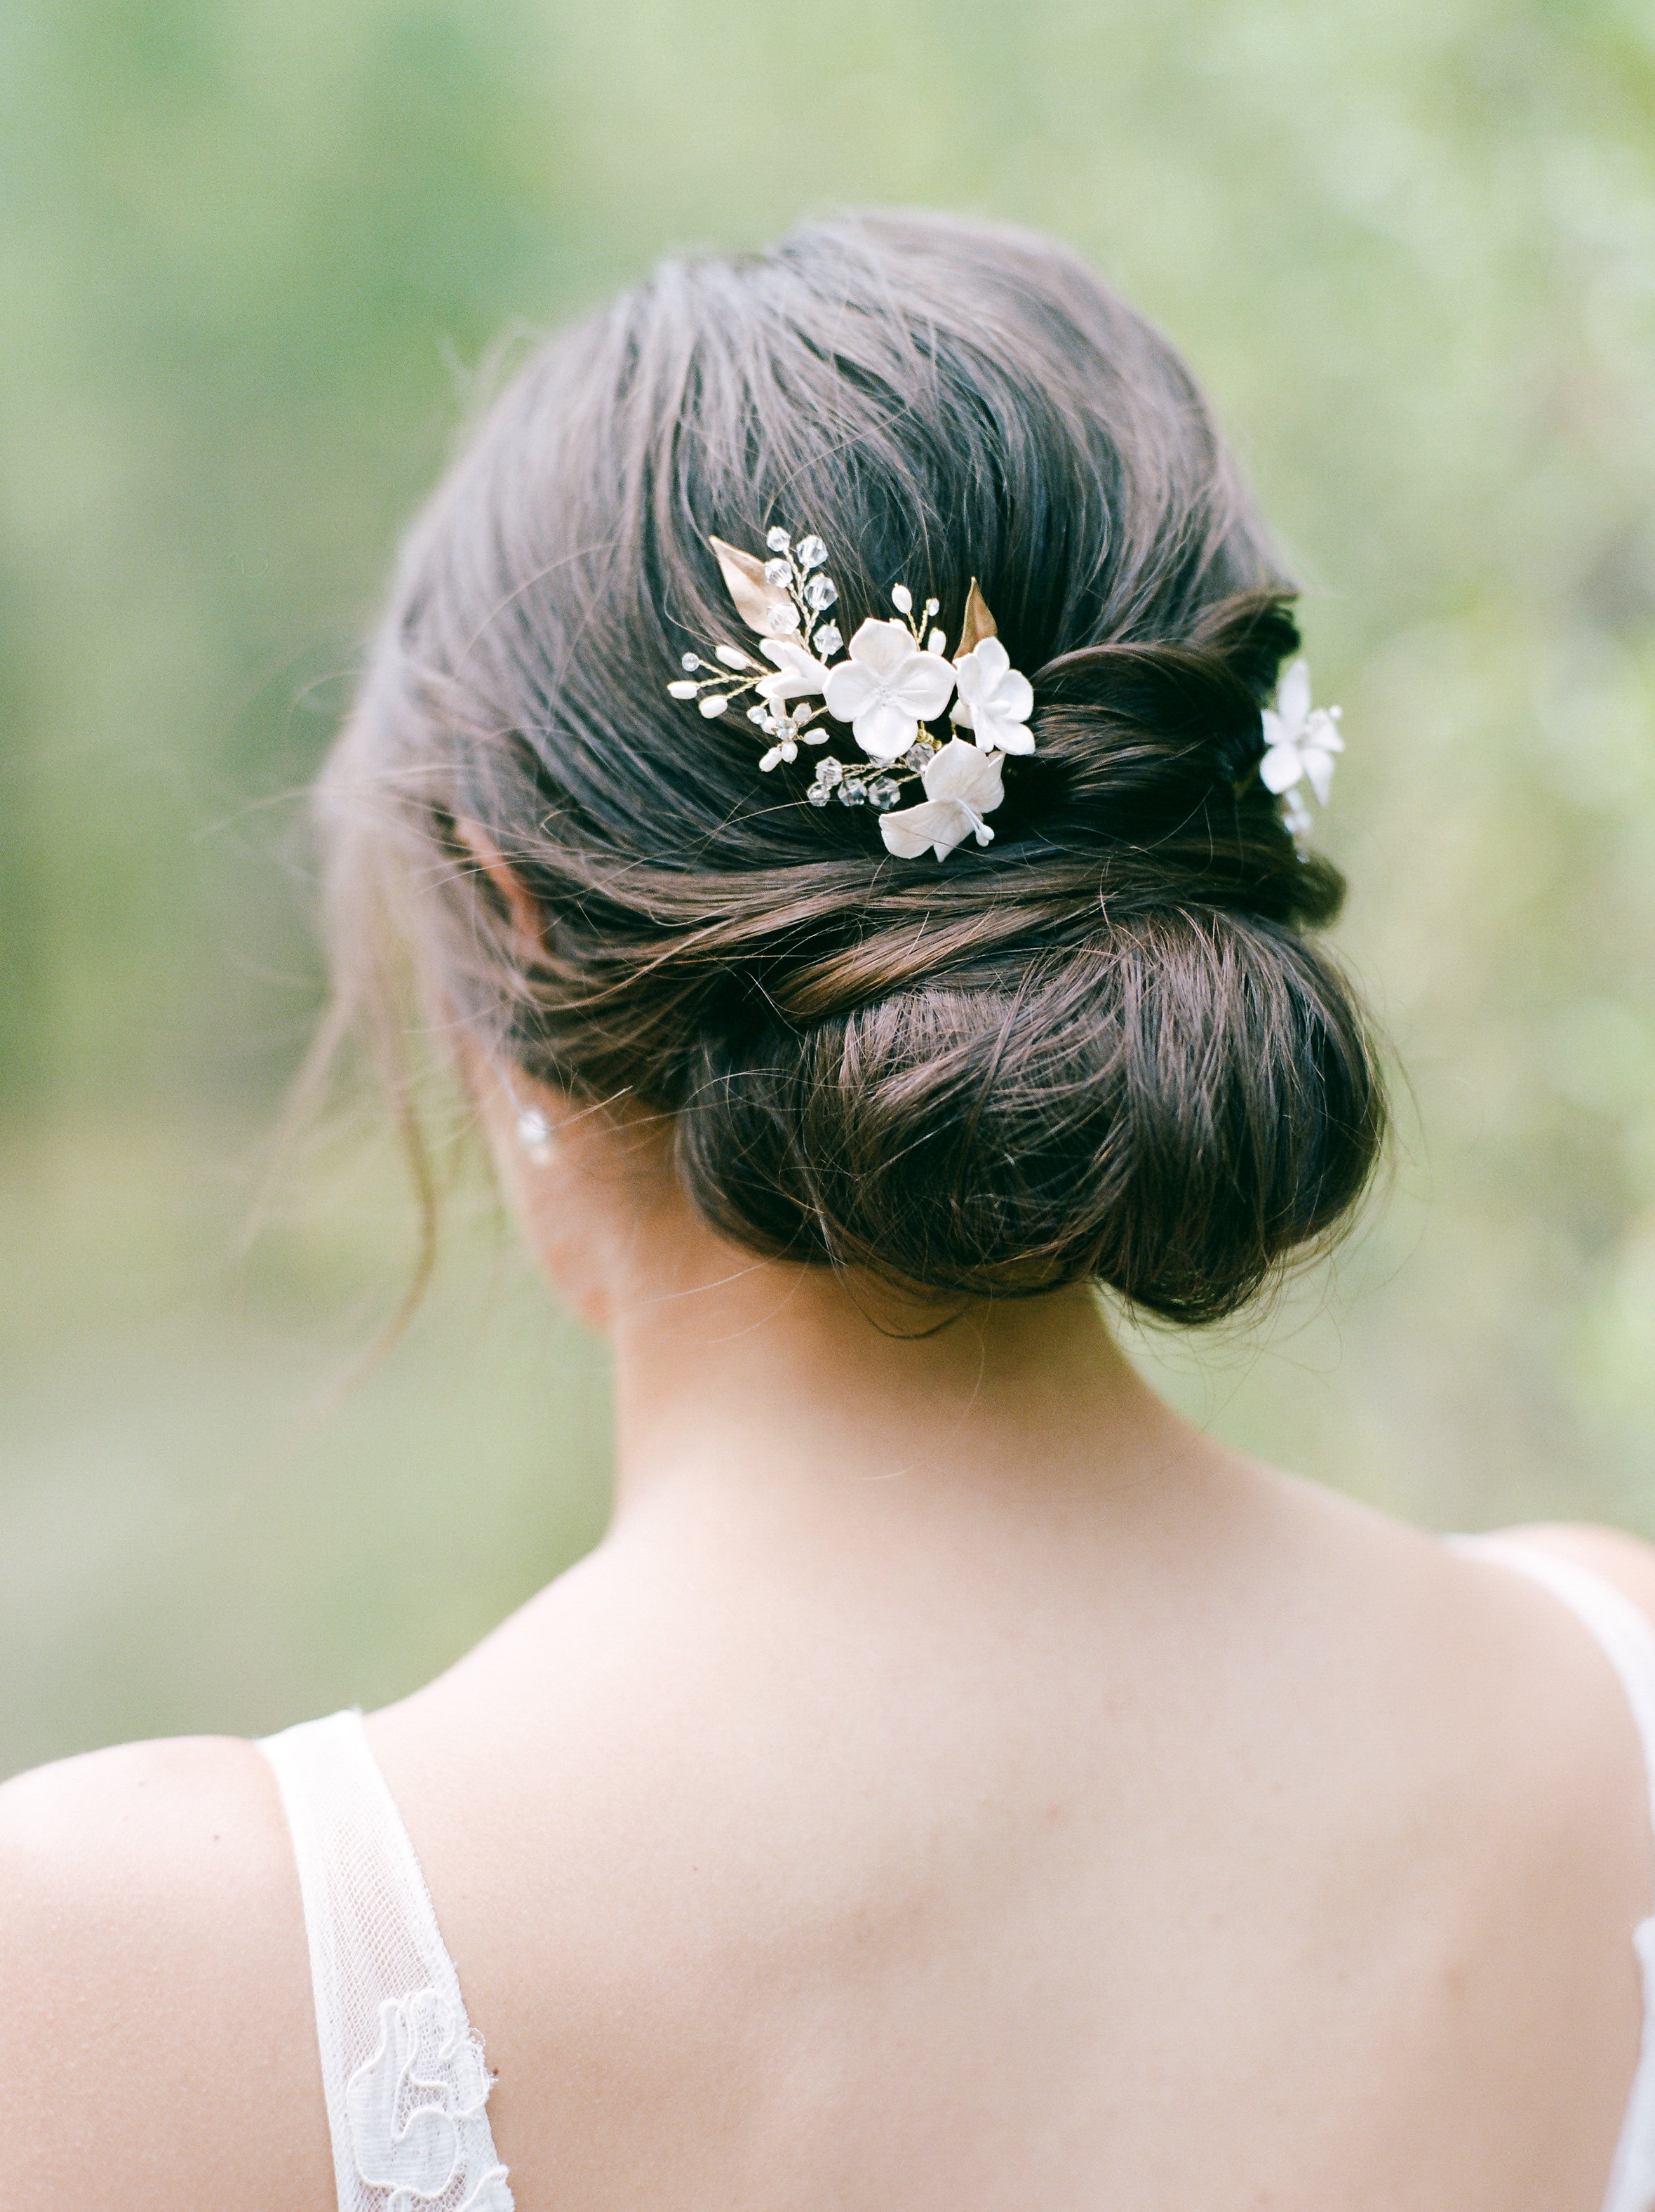 Fashionable Romantic Florals Updo Hairstyles Intended For 55 Simple Wedding Hairstyles That Prove Less Is More (View 14 of 20)